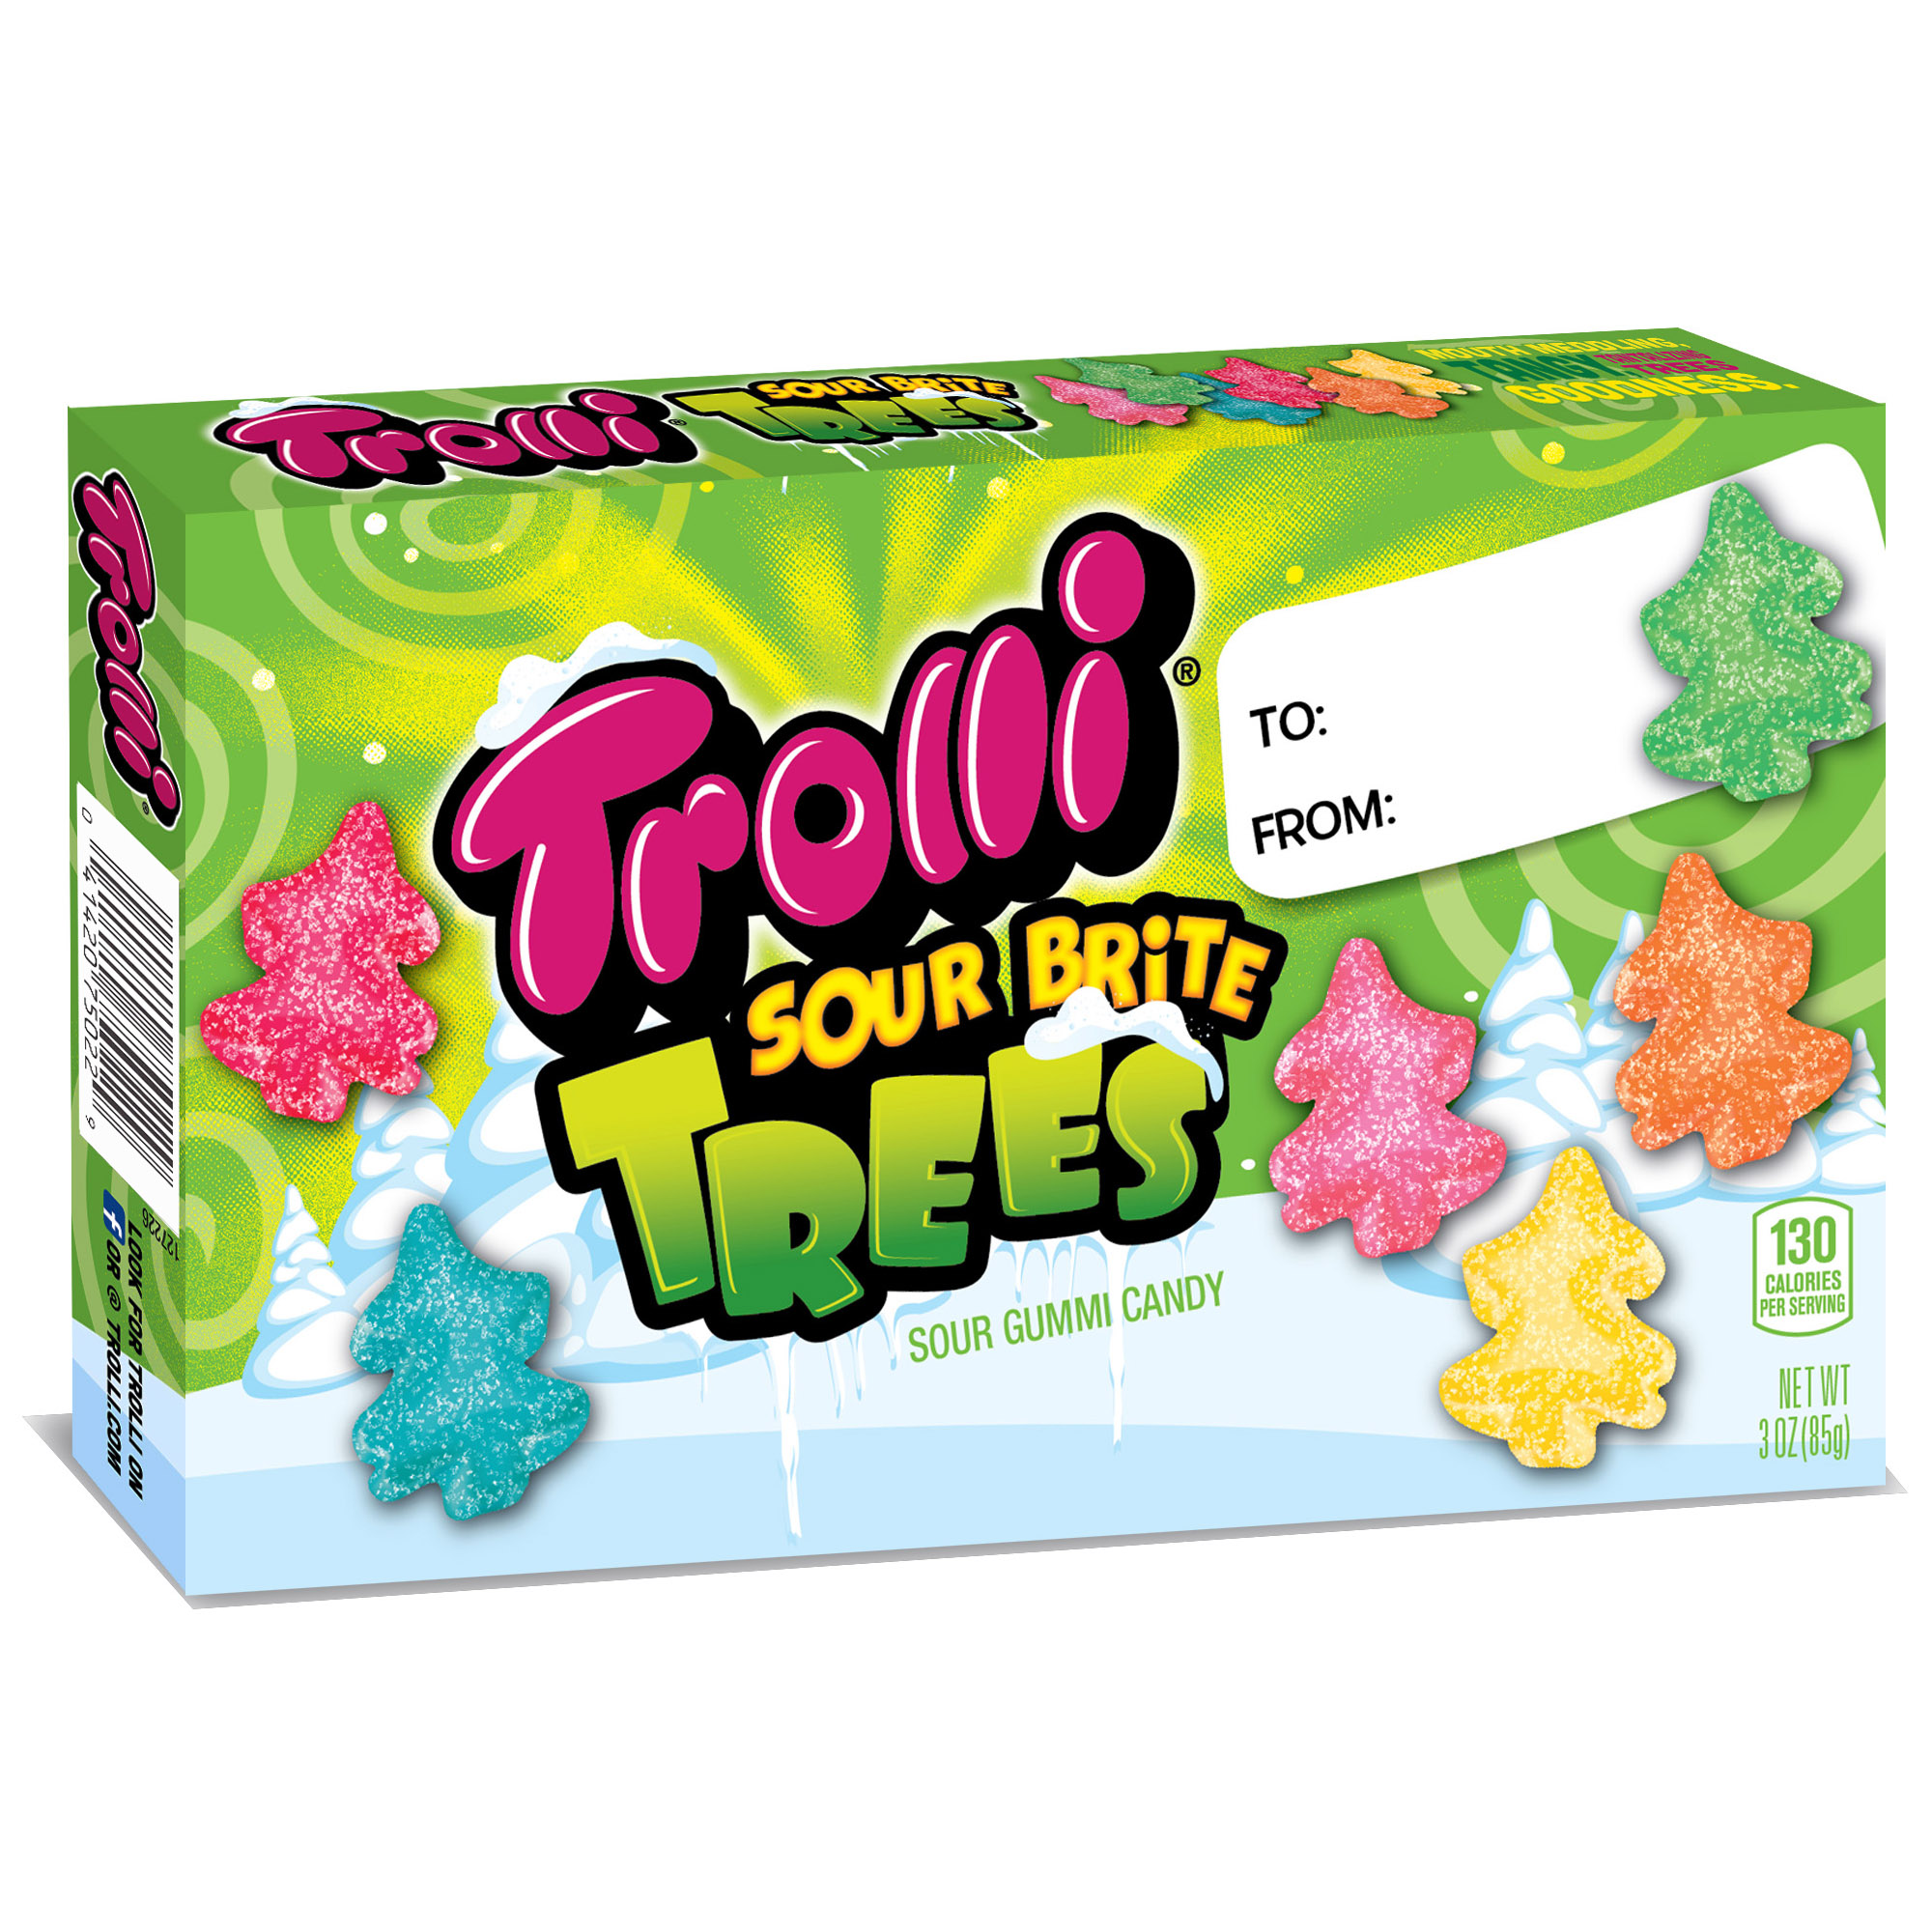 Trolli Sour Brite Trees Gummi Candy, 3Oz.